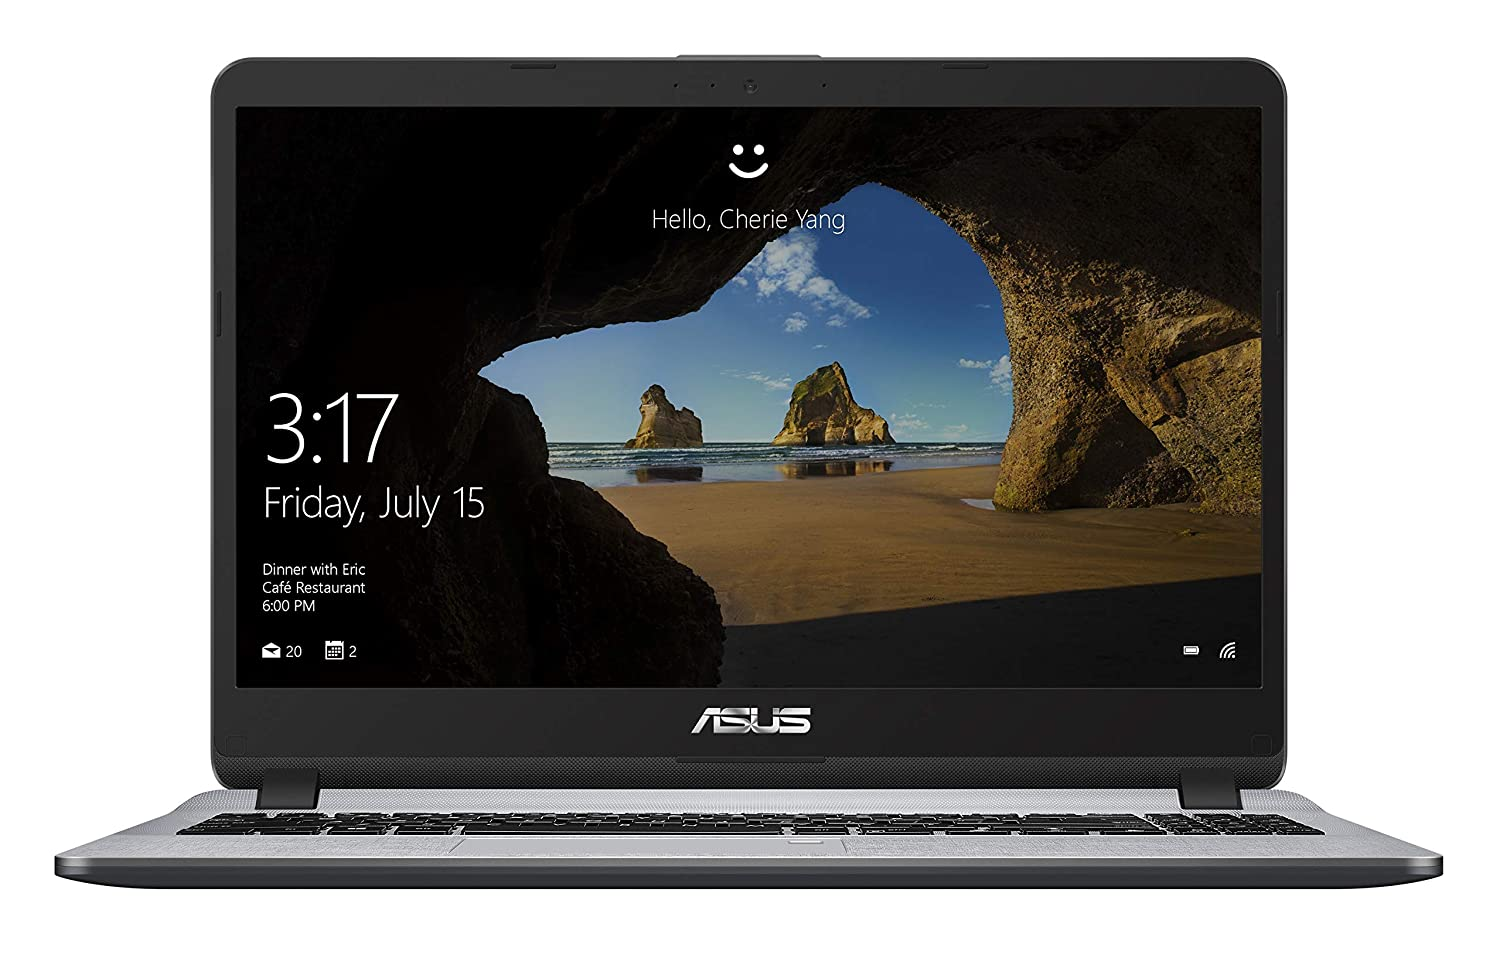 ASUS X507   Core i3  7th Gen/4  GB/1TB HDD / 15.6  FHD/ Windows 10/ 2 GB MX110   Thin and Light X507UB  EJ307T   Stary Grey /1.6 kg  Laptops